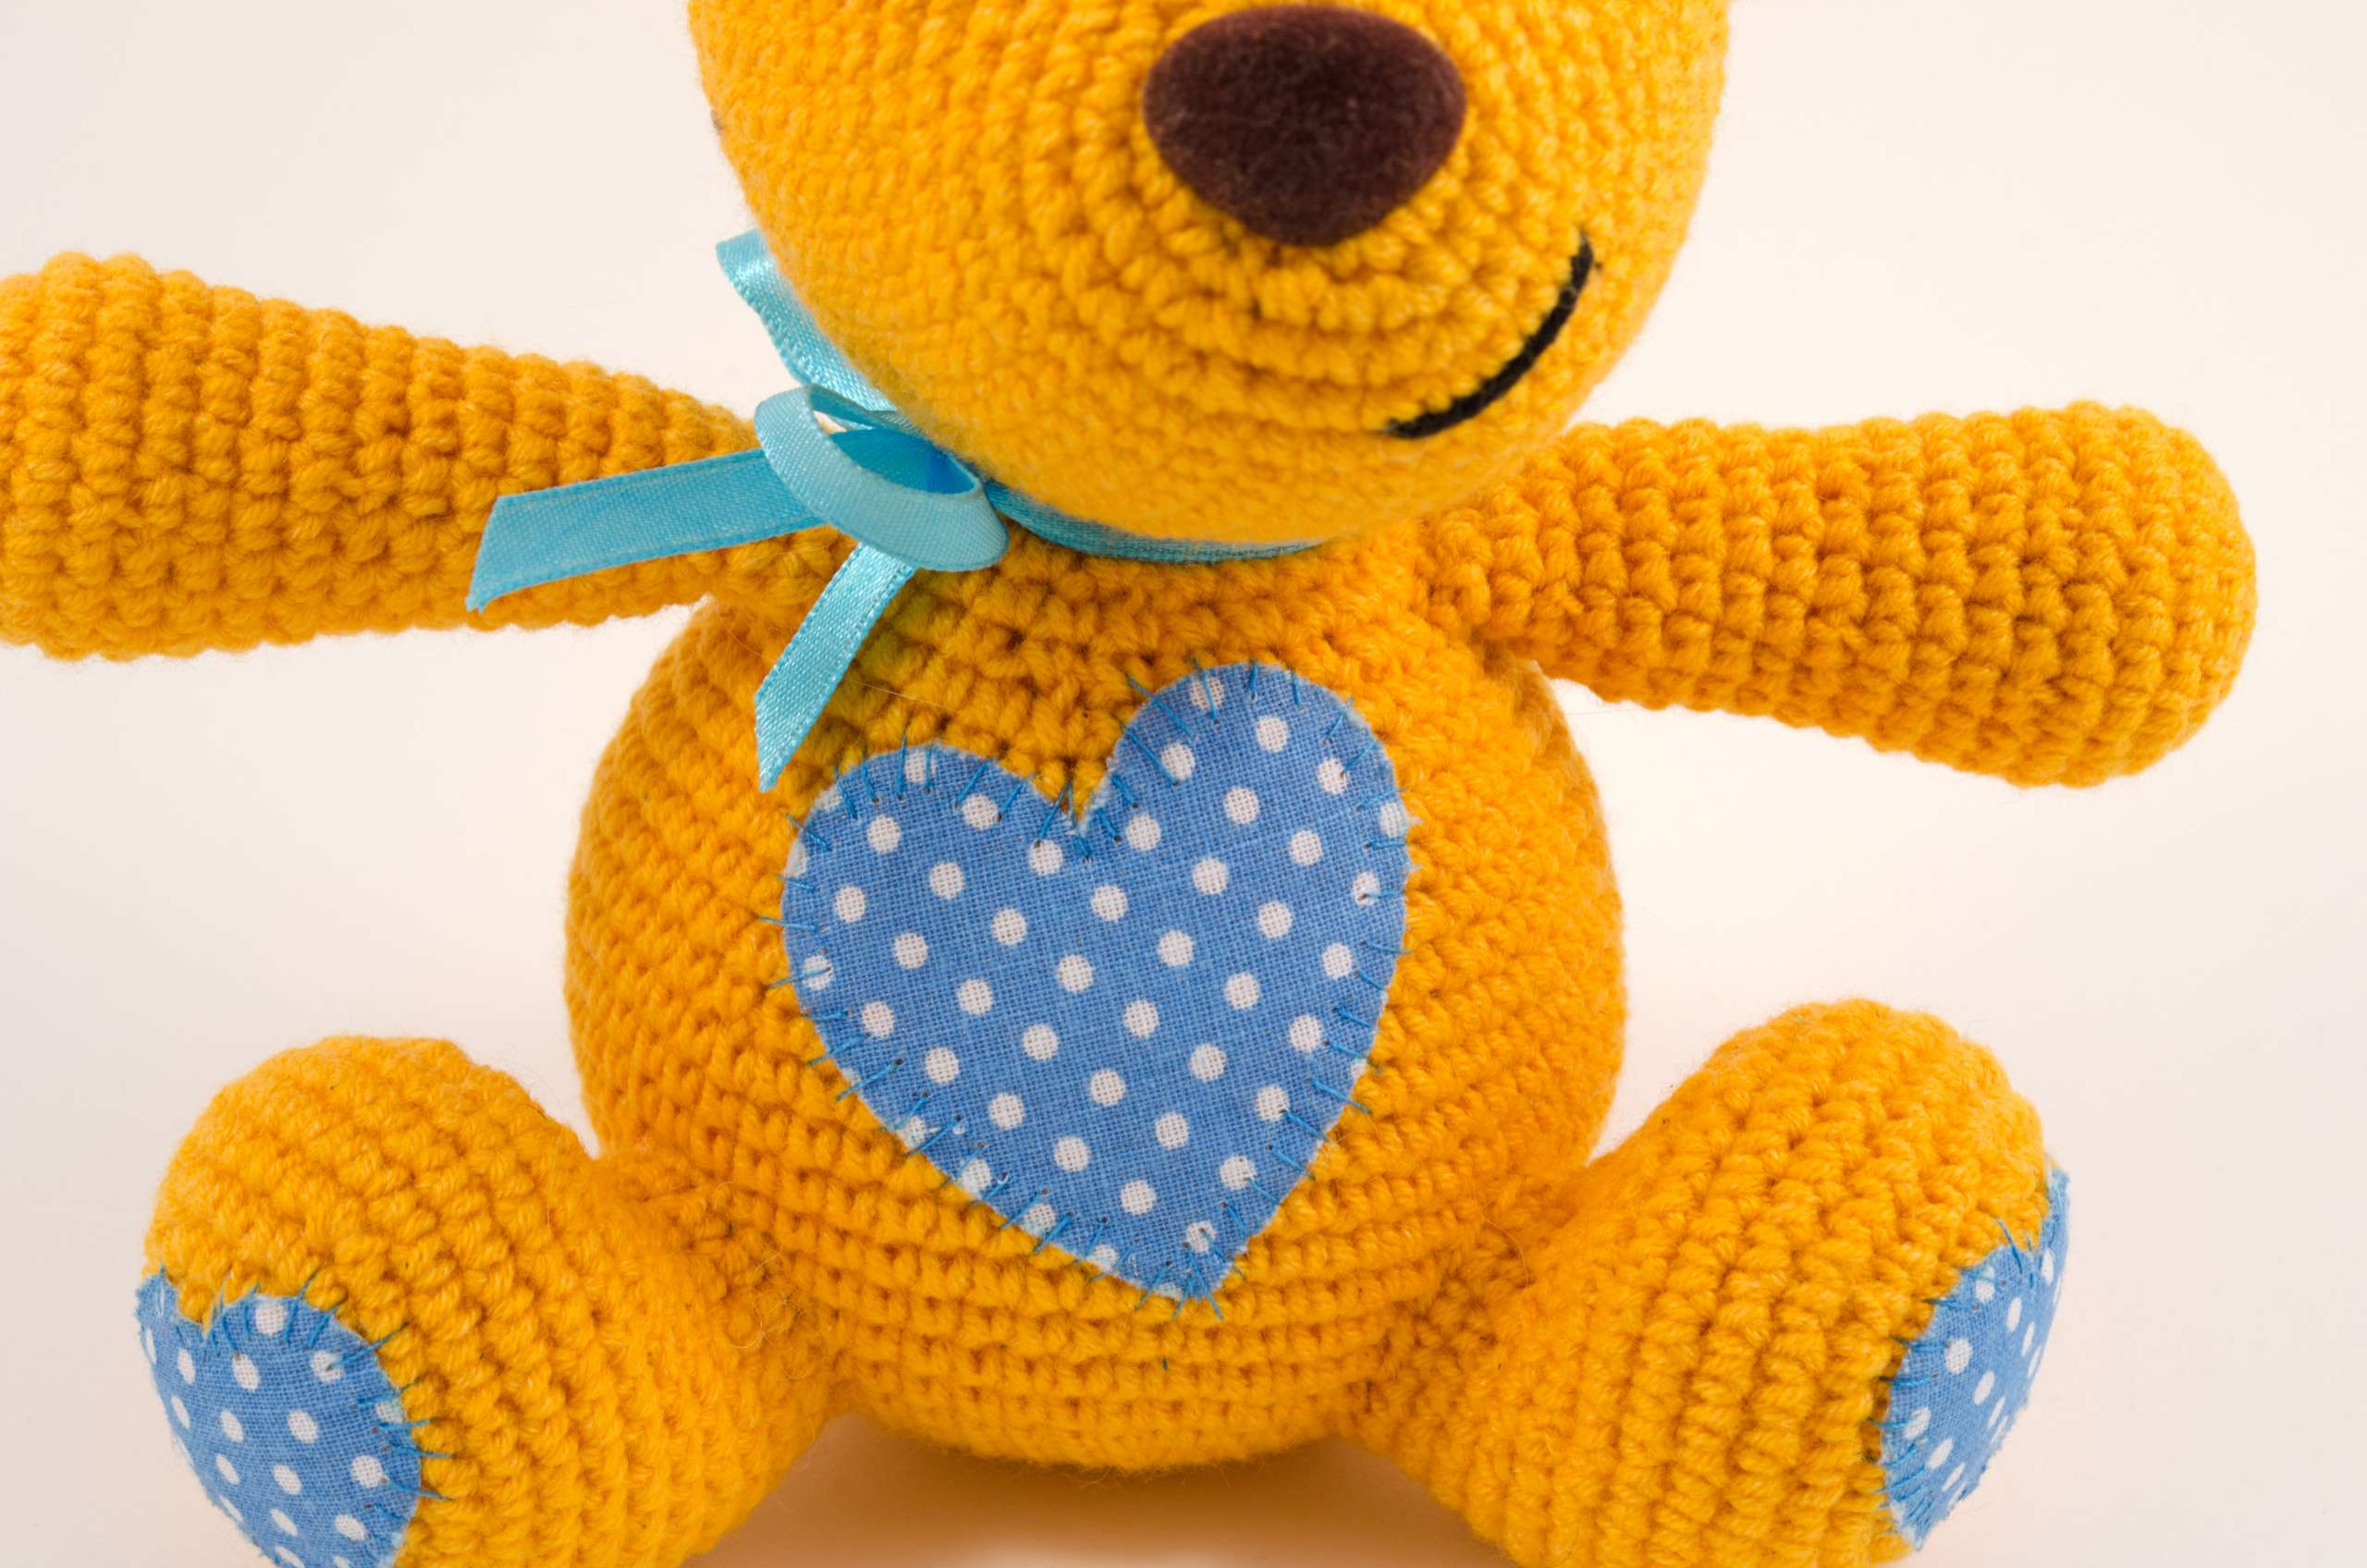 amigurumi teddy bear close up view